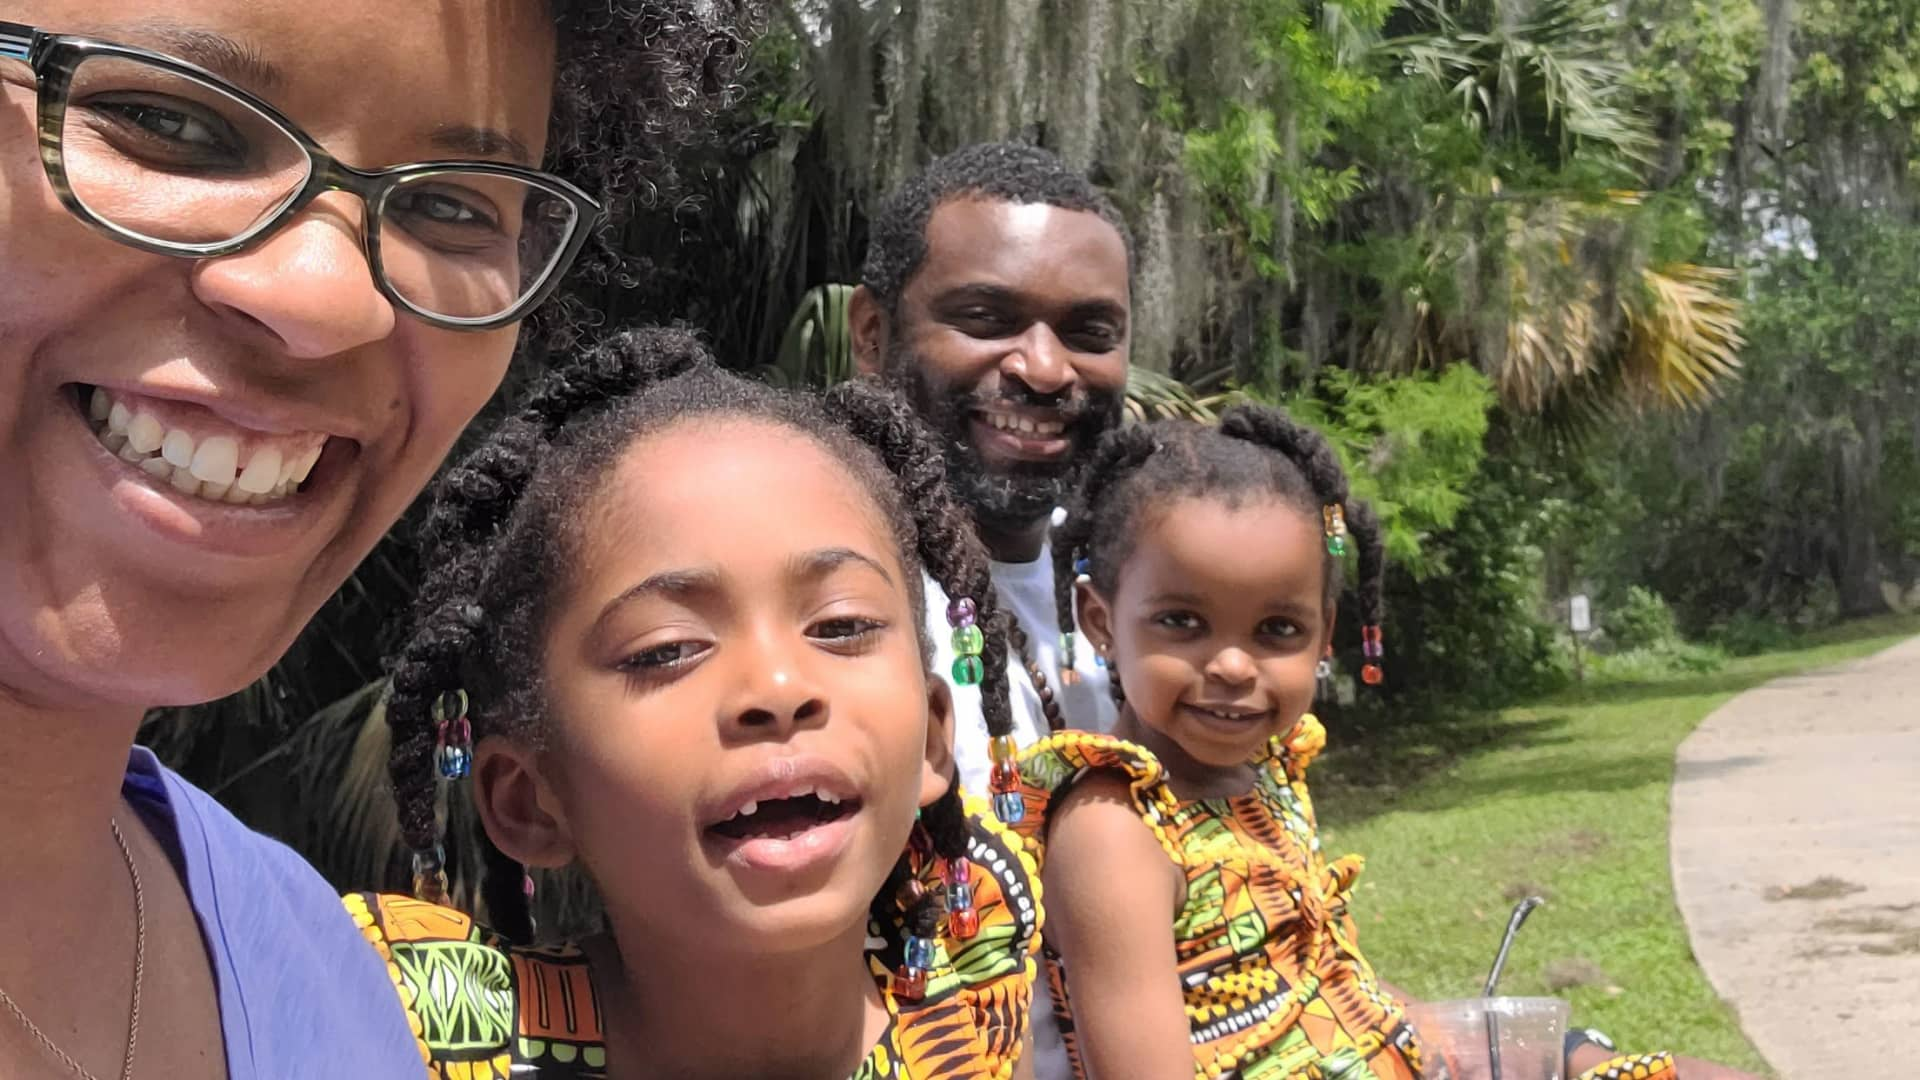 Adrienne Streater, pictured with her husband Douglas and two daughters, says having access to paid family leave would have helped tremendously when she was a new mother.